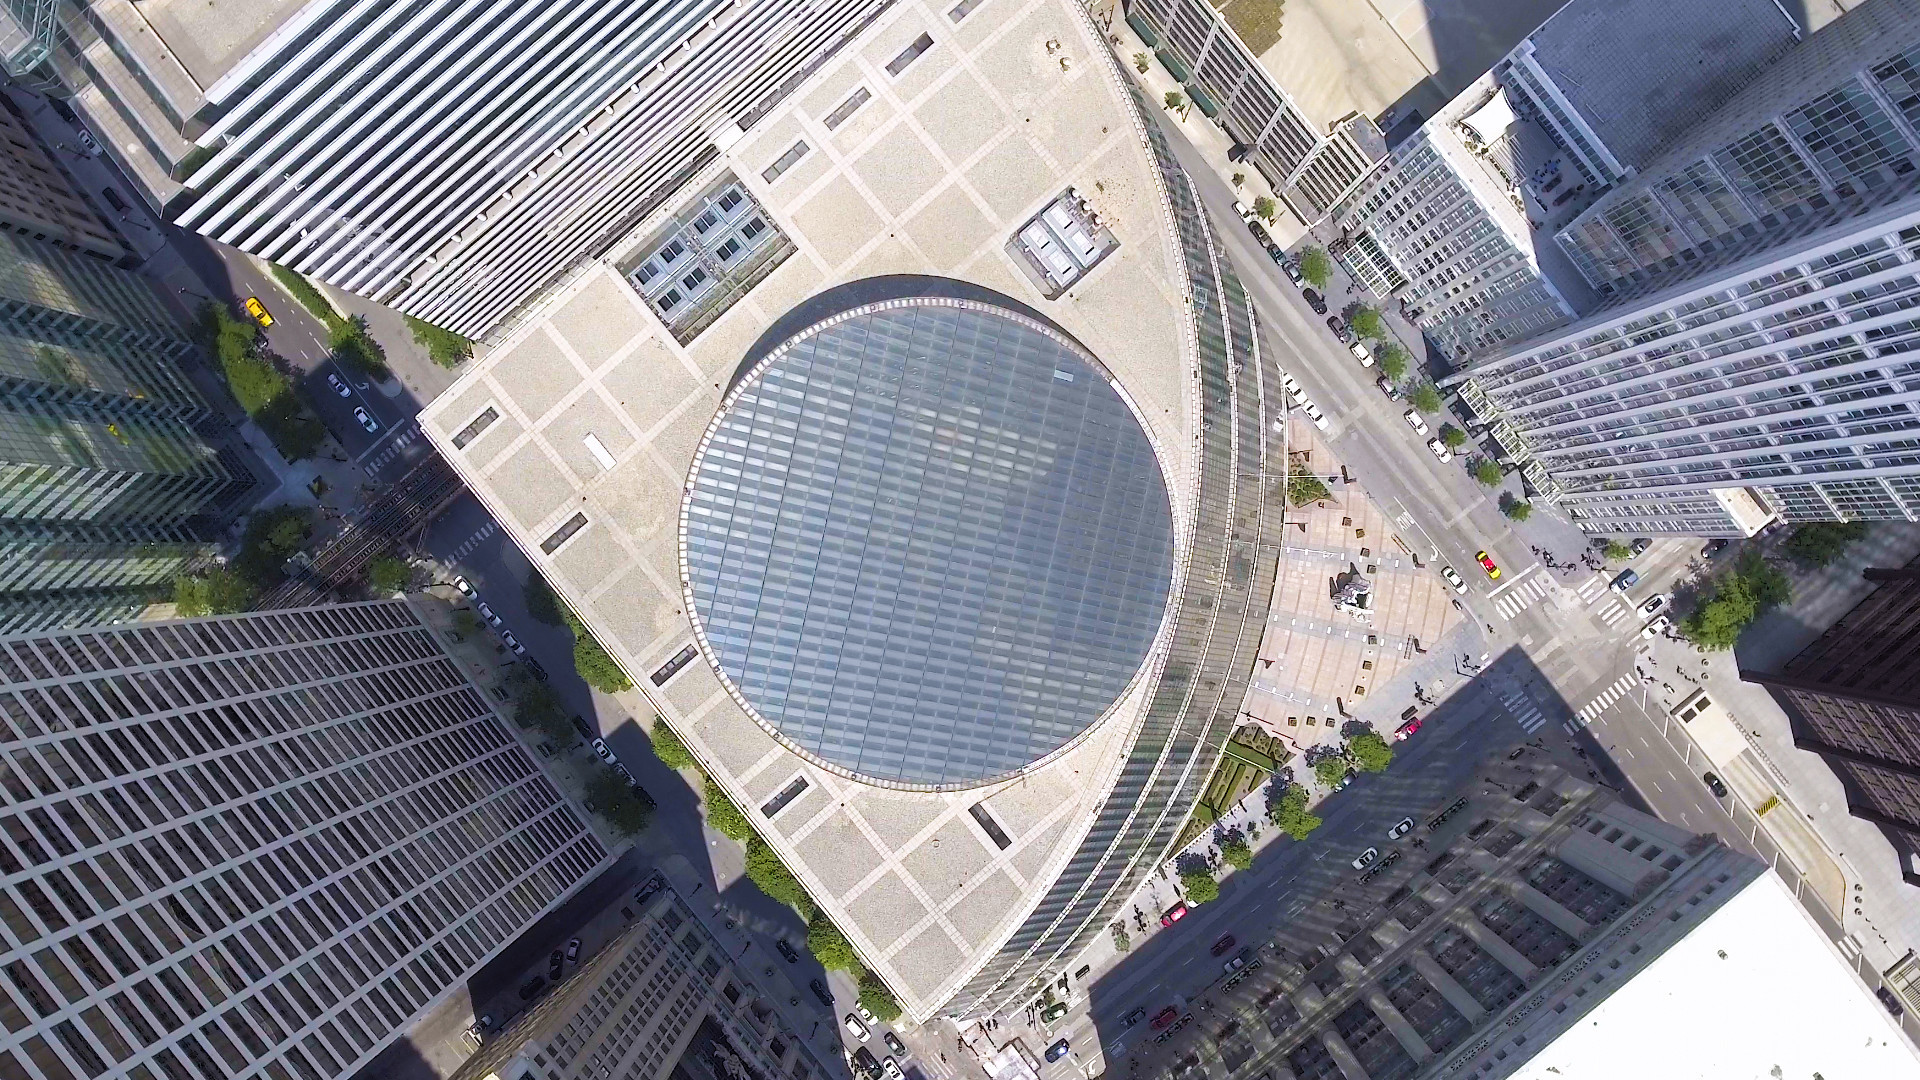 An aerial view, showing the building's curving front facade.